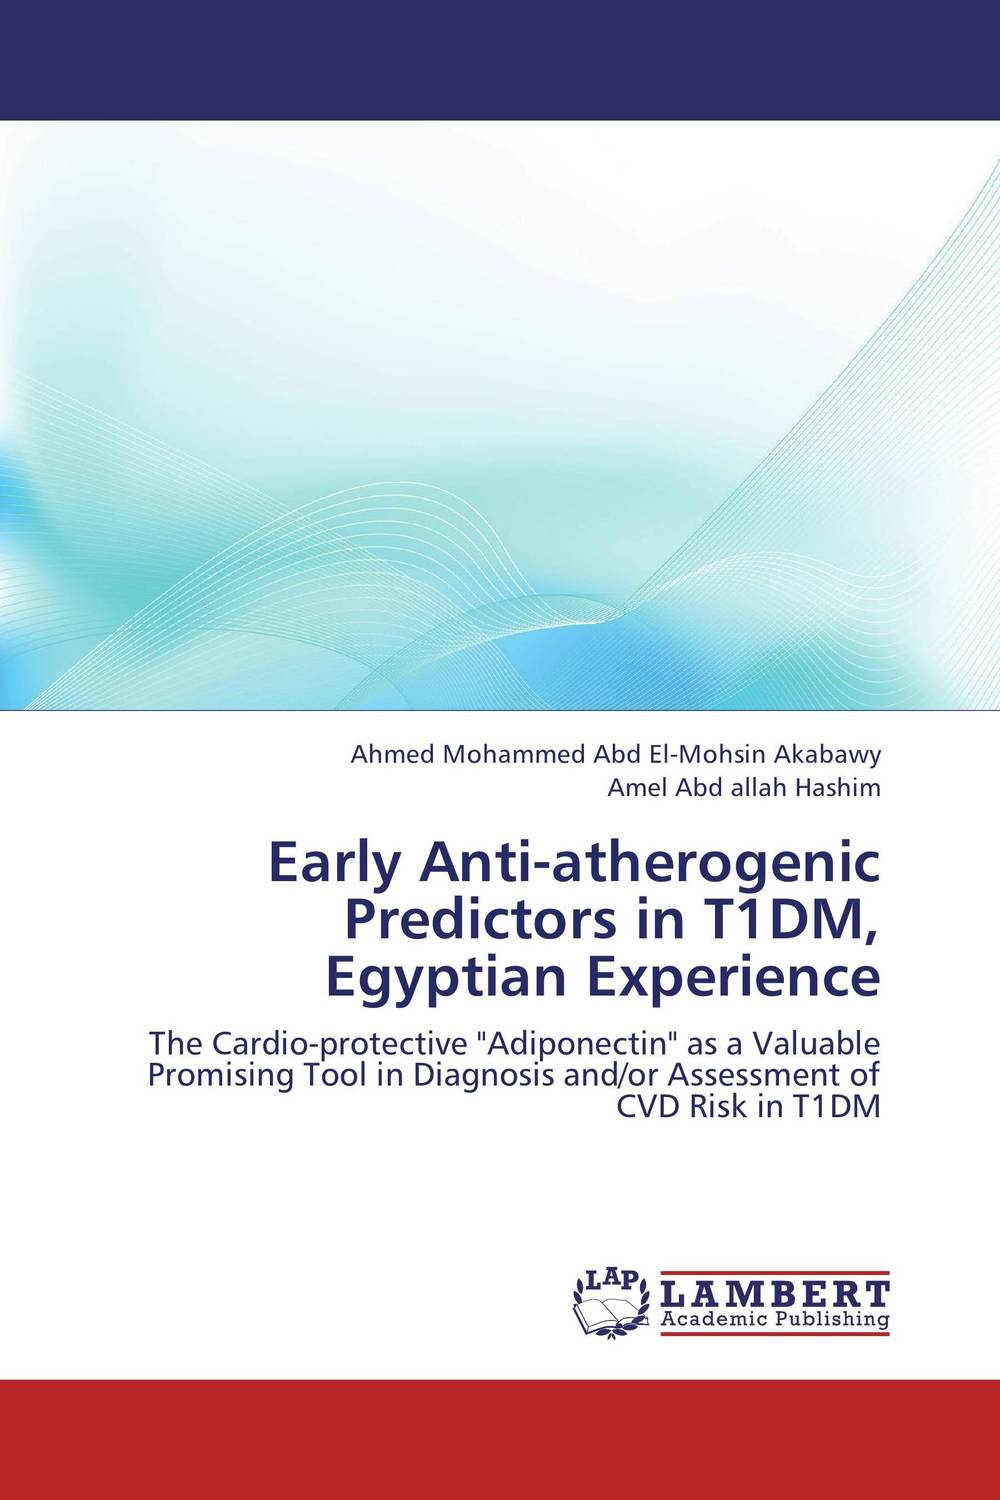 Early Anti-atherogenic Predictors in T1DM, Egyptian Experience